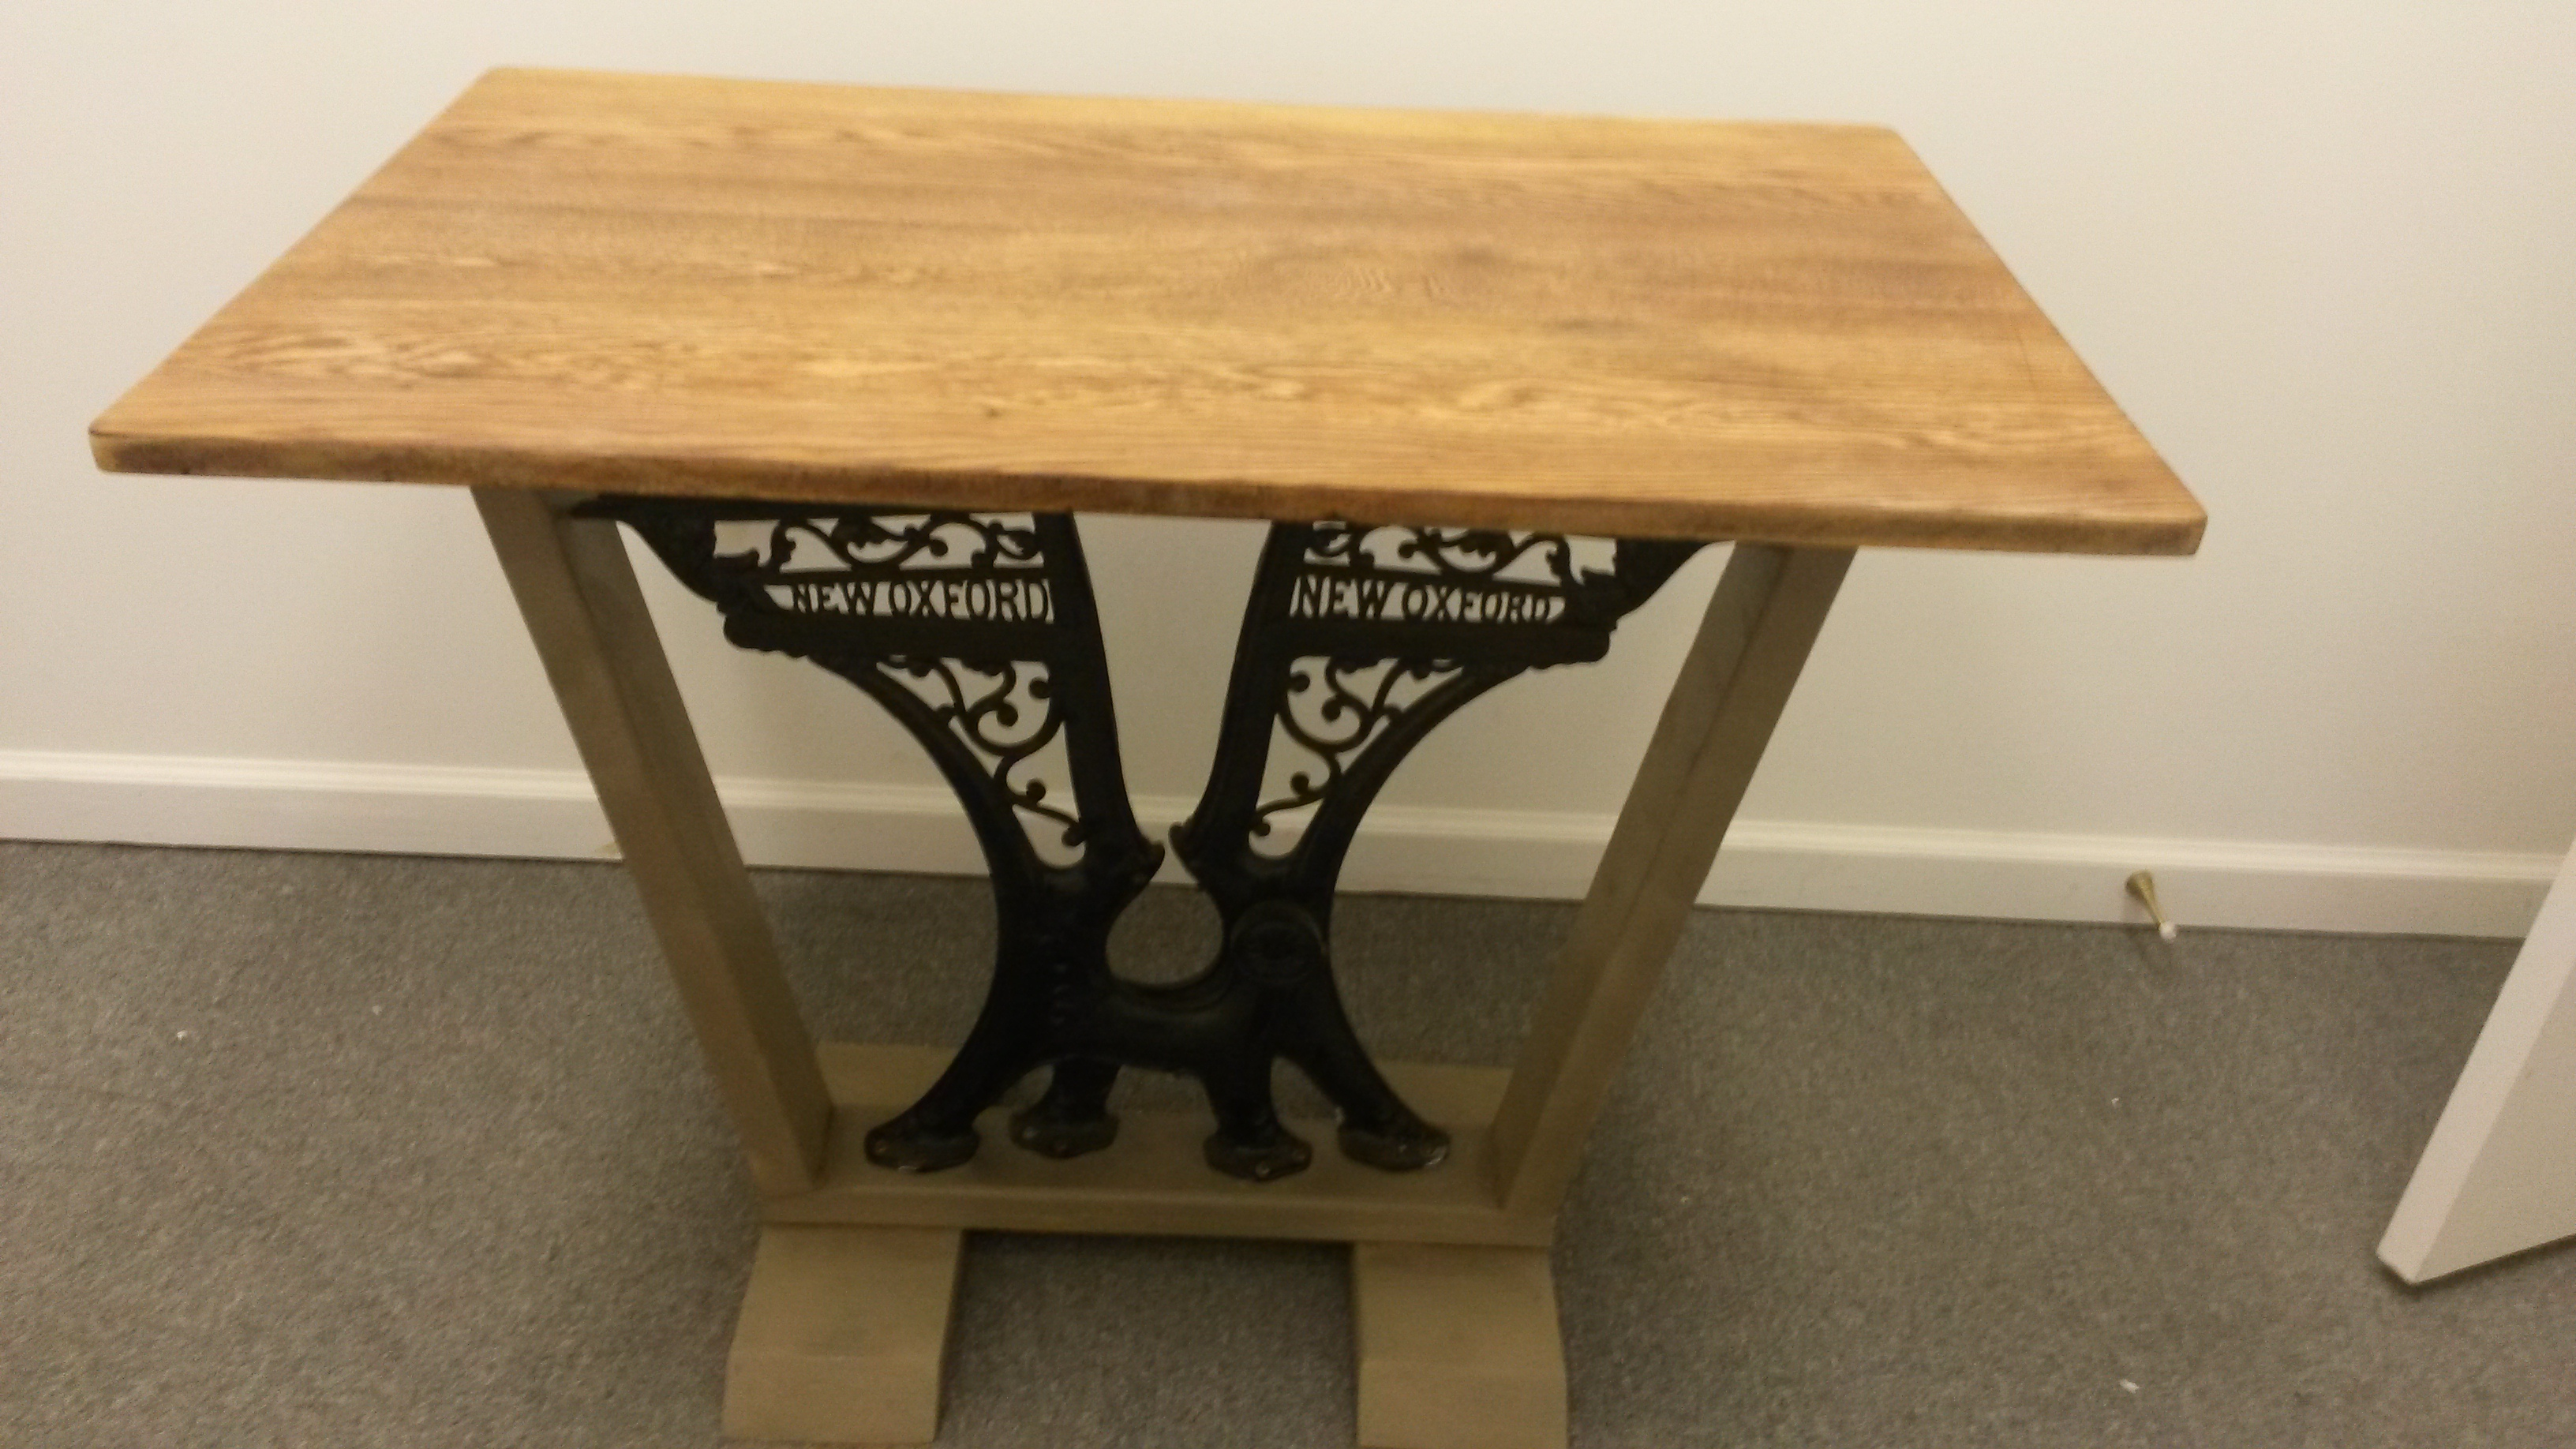 Entry Table W Student Desk Legs 125 I Love The Ornate Cast Iron Found On Turn Of Century Desks These Say New Oxford Them And